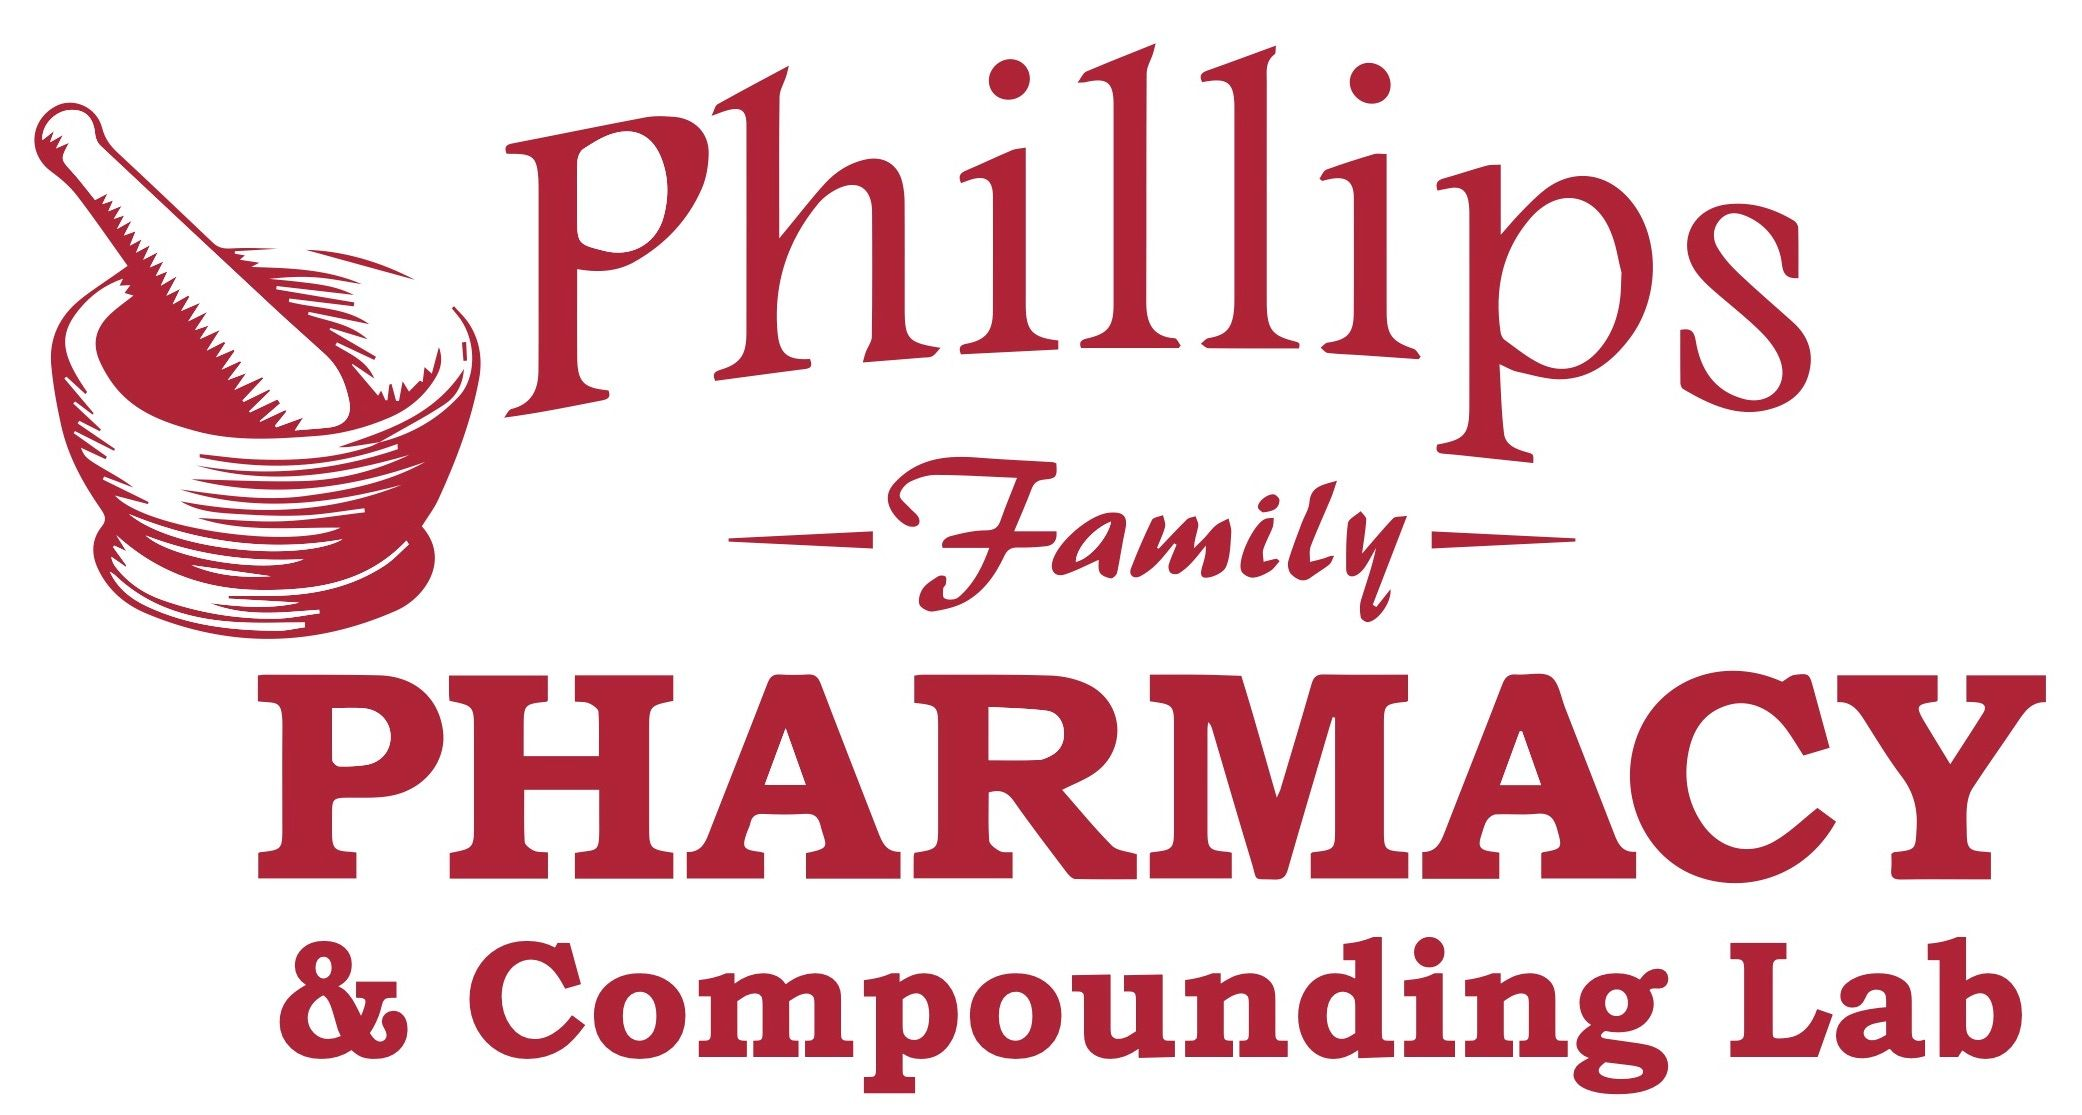 Phillips Family Pharmacy